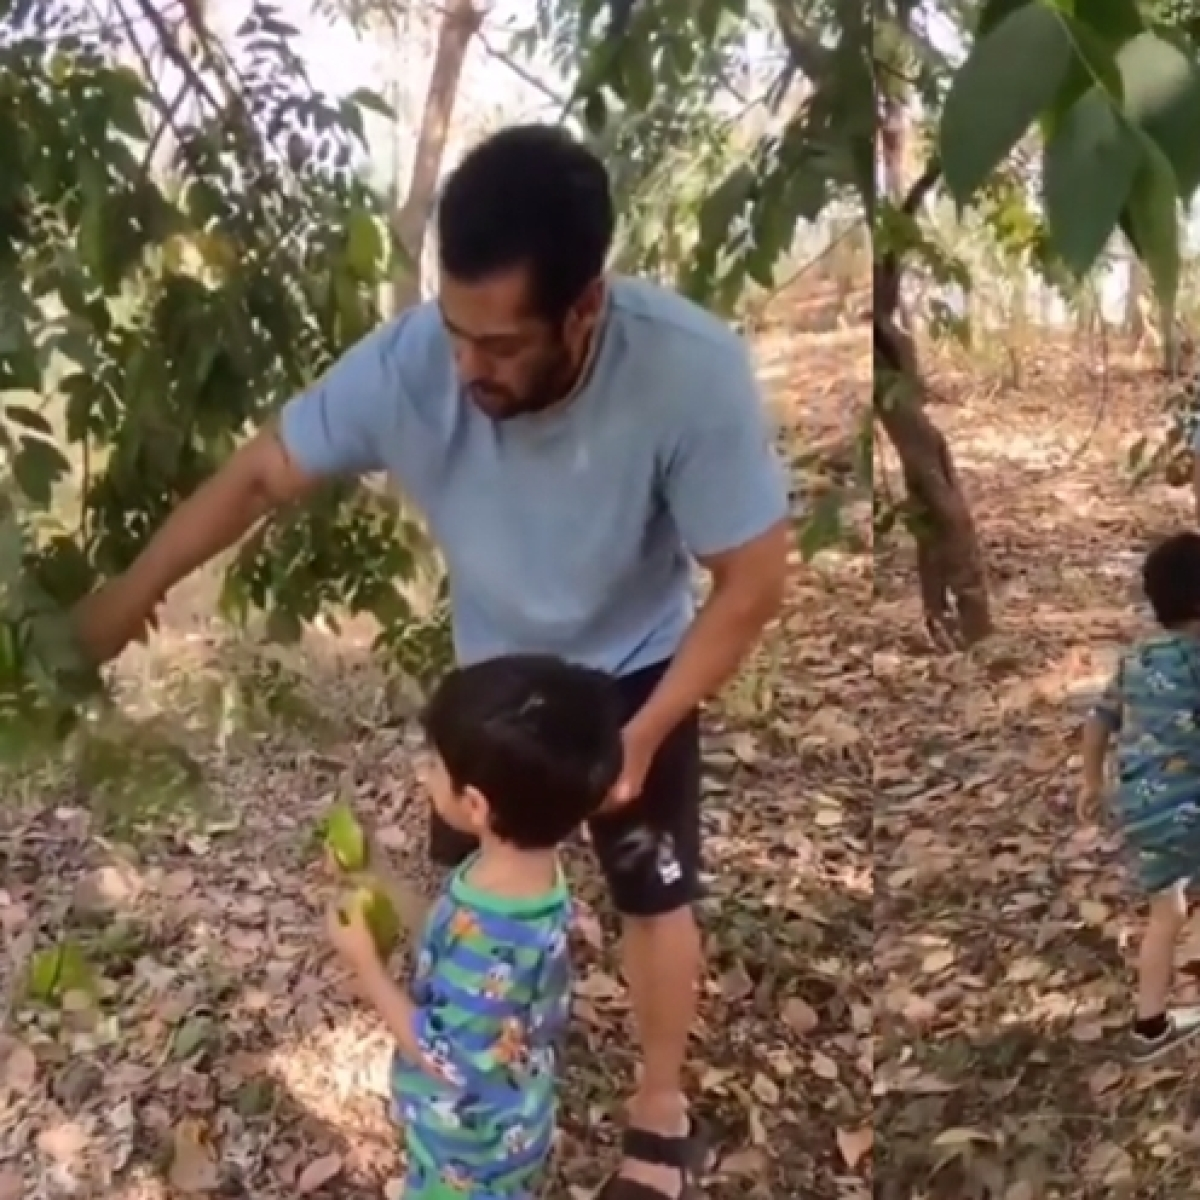 Watch: Salman Khan spends quality time with nephew Ahil as they pick fruits at his Panvel farmhouse